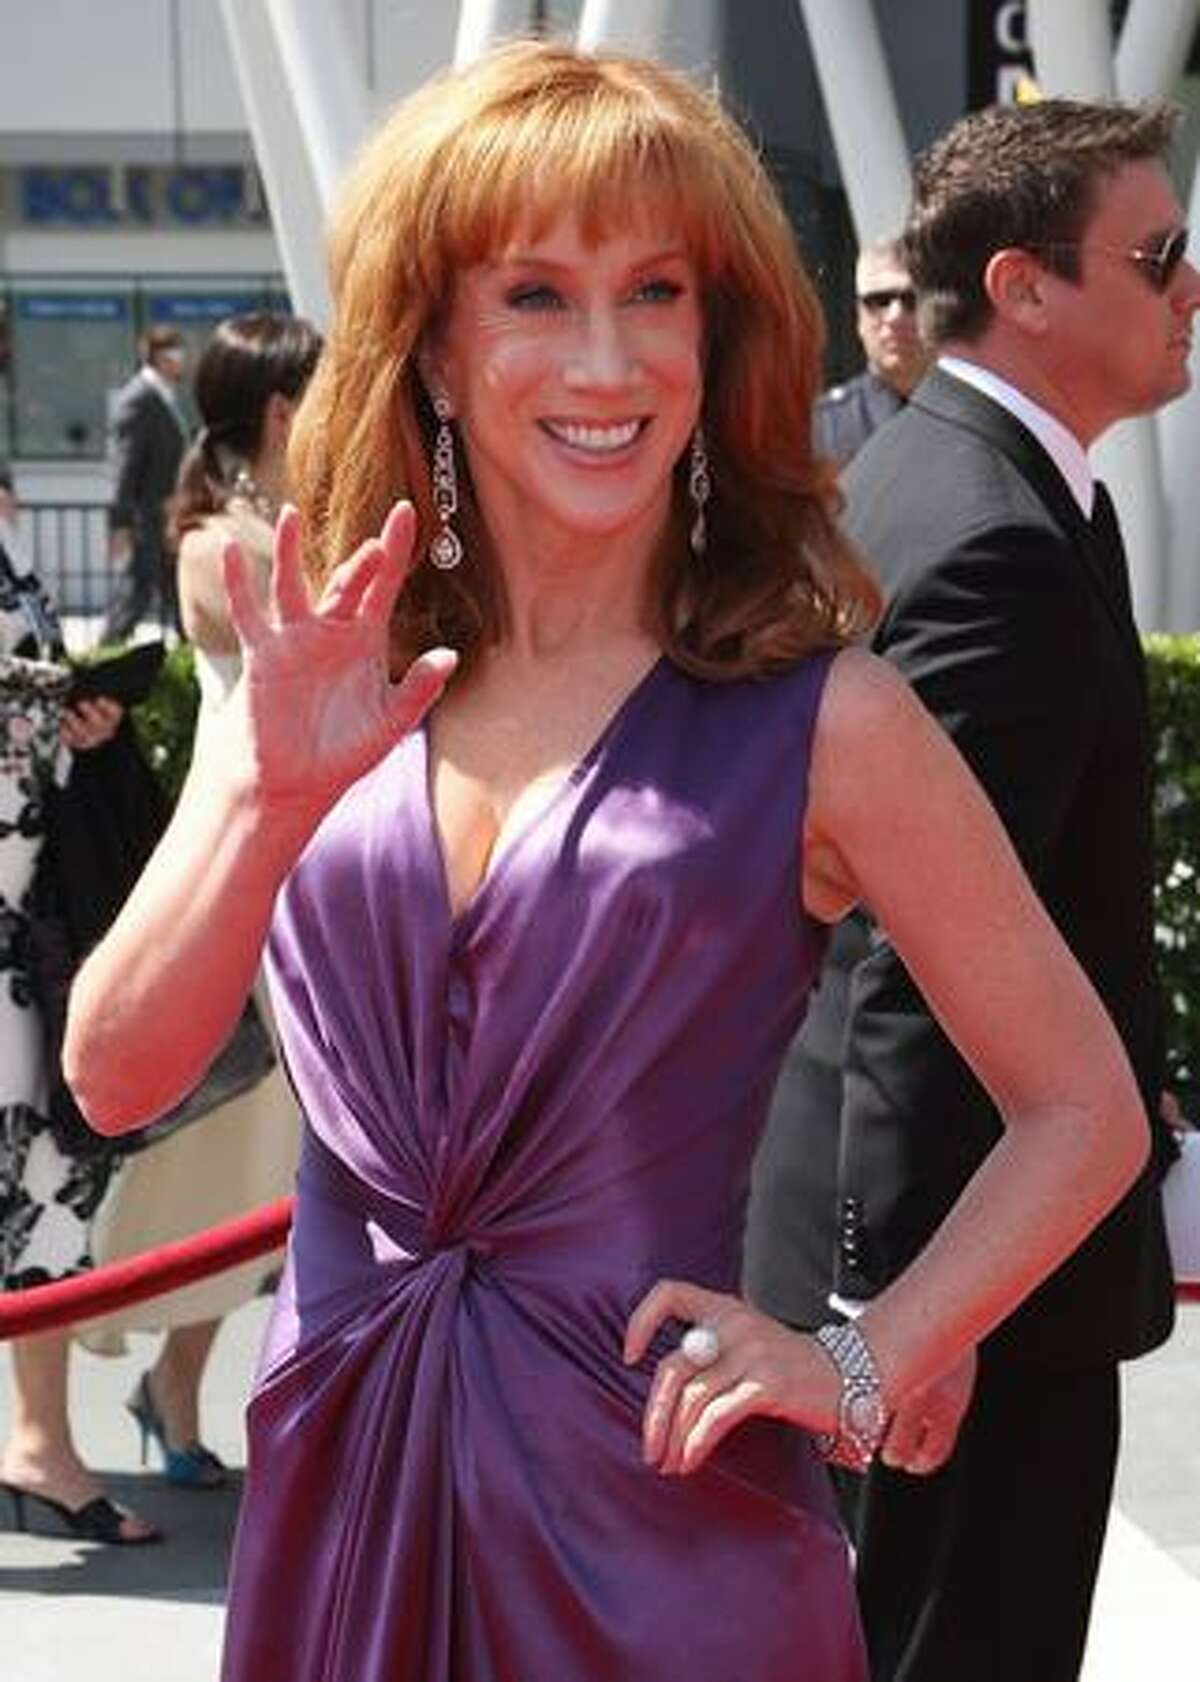 Host Kathy Griffin attends the 2009 Primetime Creative Arts Emmy Awards at the Nokia Theatre L.A. Live in Los Angeles on Saturday, Sept. 12, 2009.